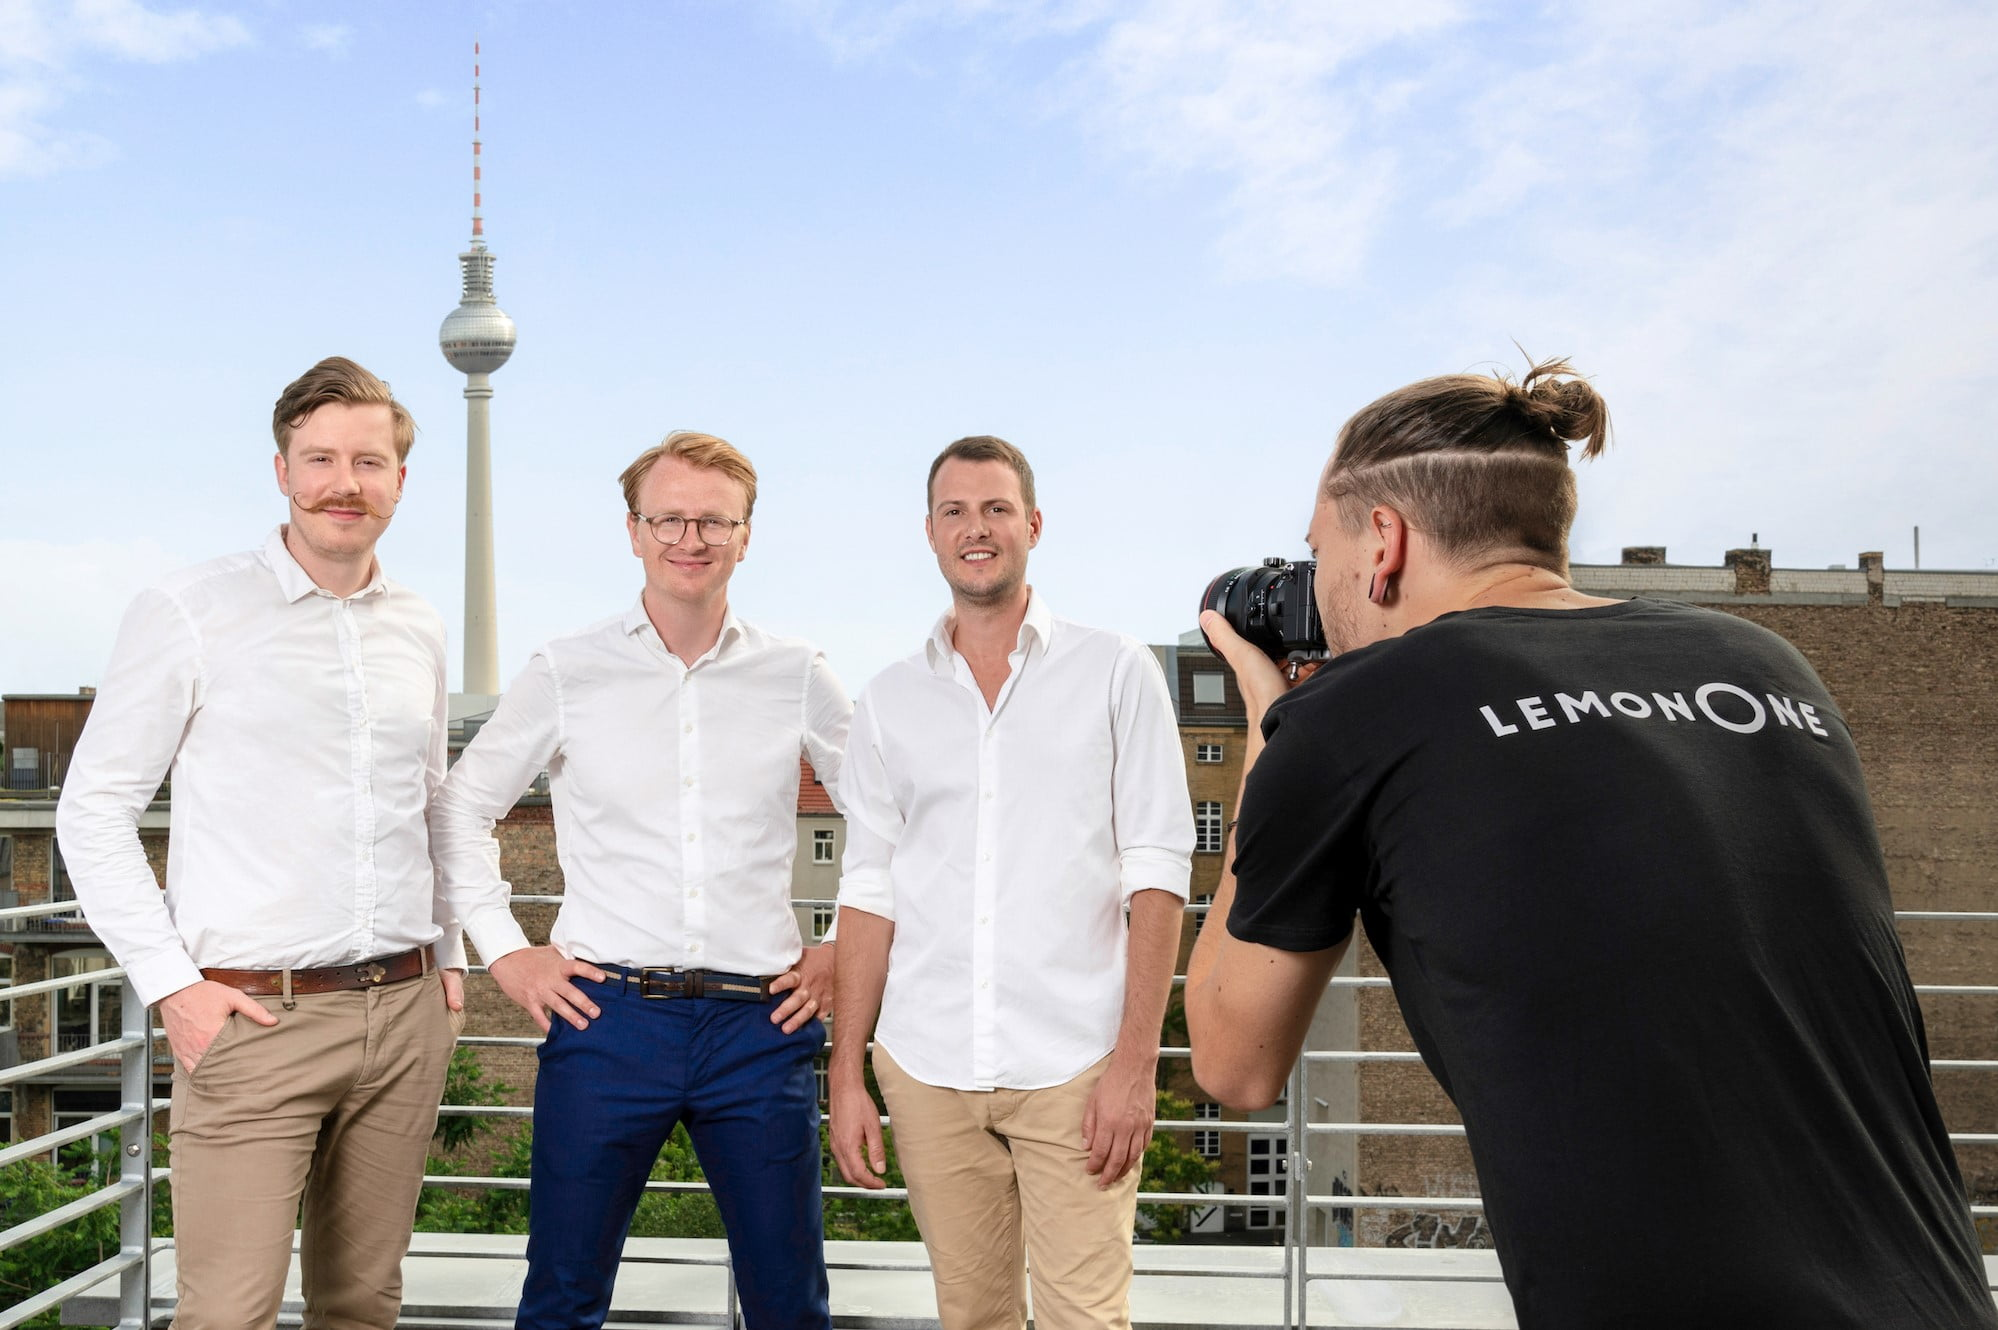 This Berlin-based startup ensures to provide businesses with professional photographers within 24 hours